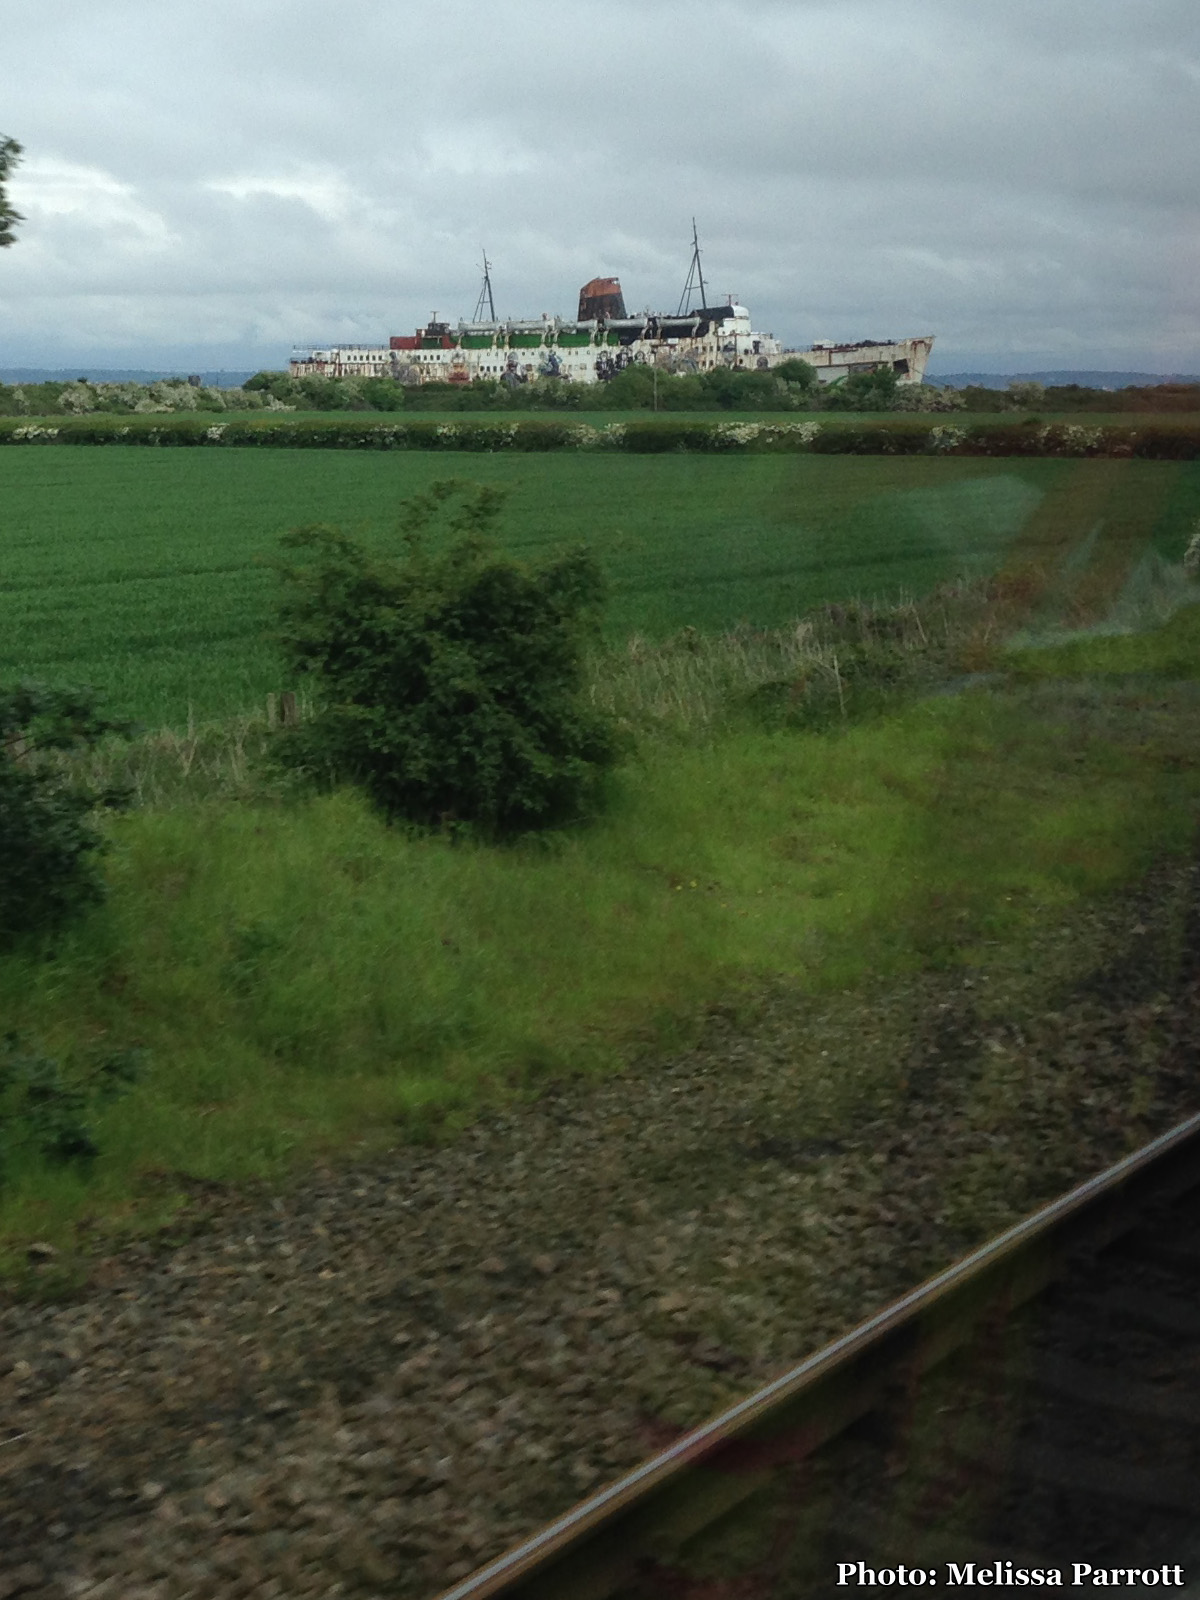 A beached ship caught my eye as the train sped past. I would have loved to explore it, for the graffiti alone not to mention the arcade games frozen in time inside! Behold the Duke of Lancaster, moored in Llanerch-y-Mor!